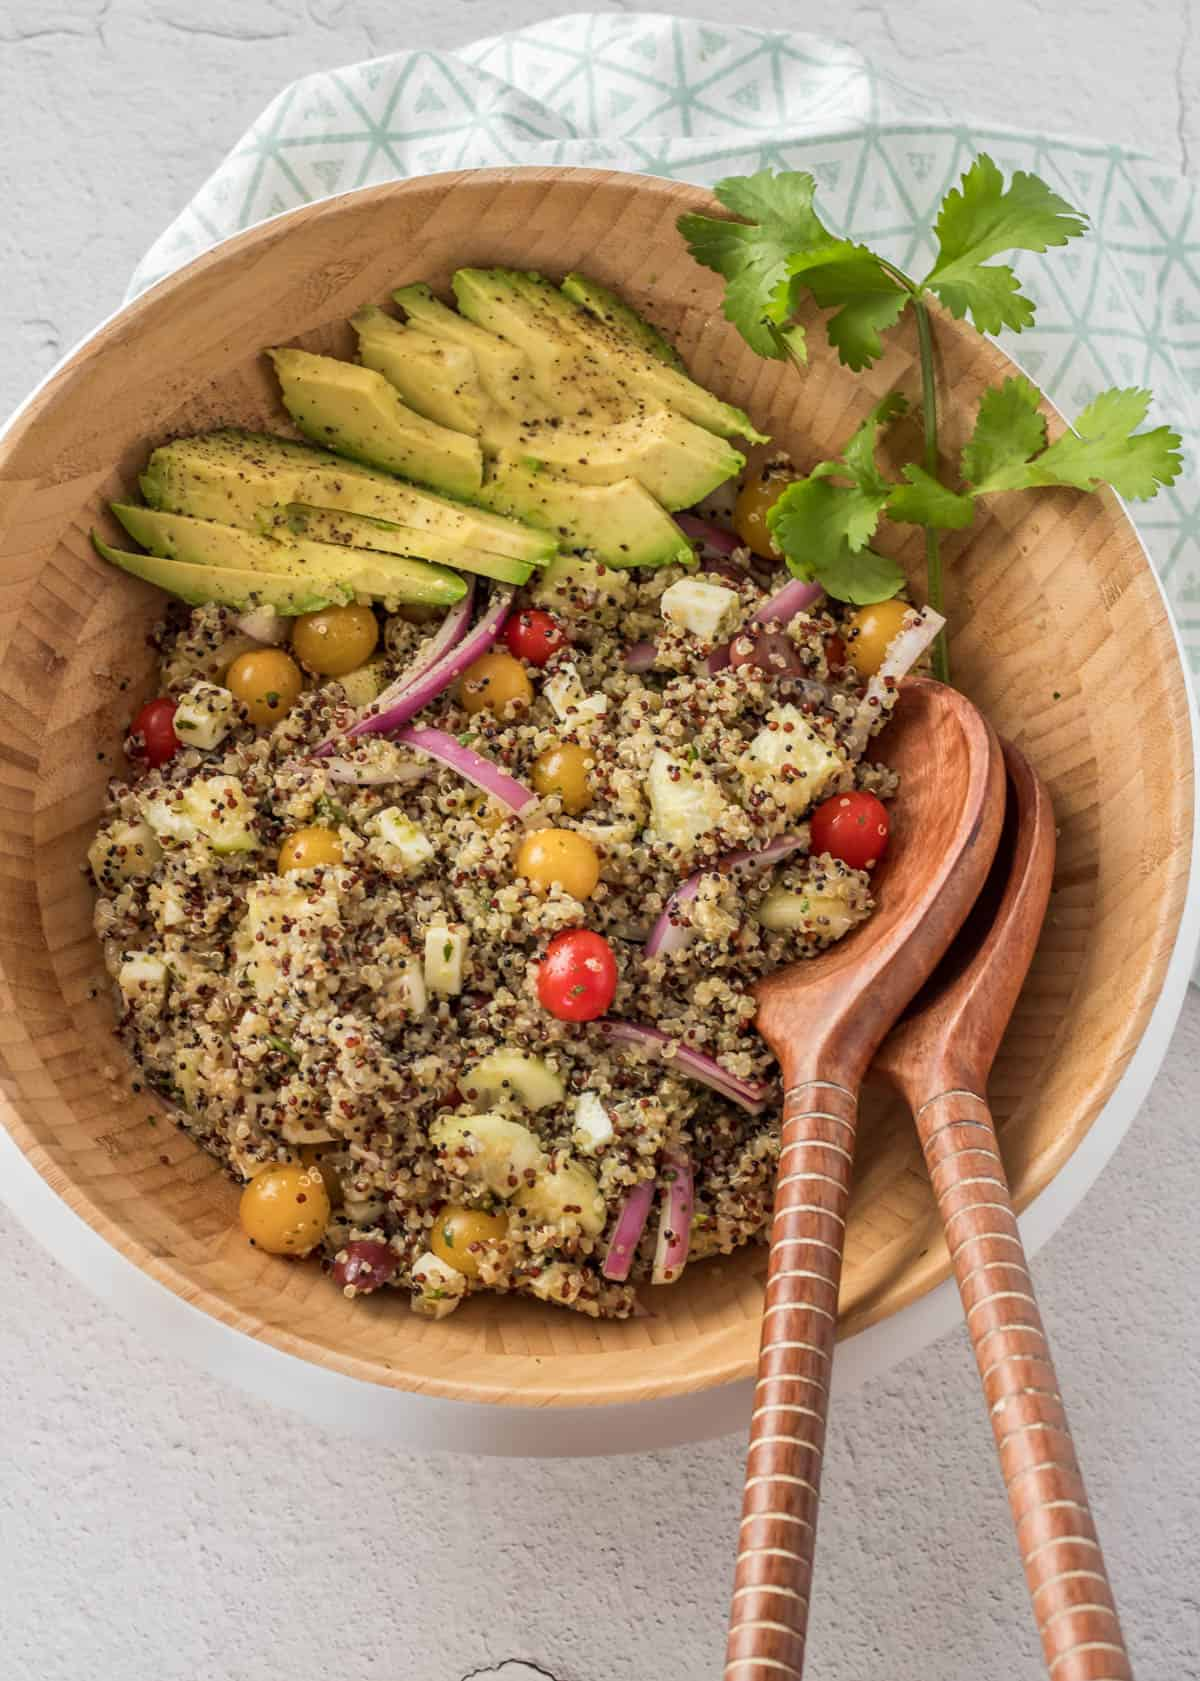 A wood salad bowl with healthy Peruvian quinoa salad, sliced avocado, and a sprig of cilantro with wood salad utensils and print napkin.